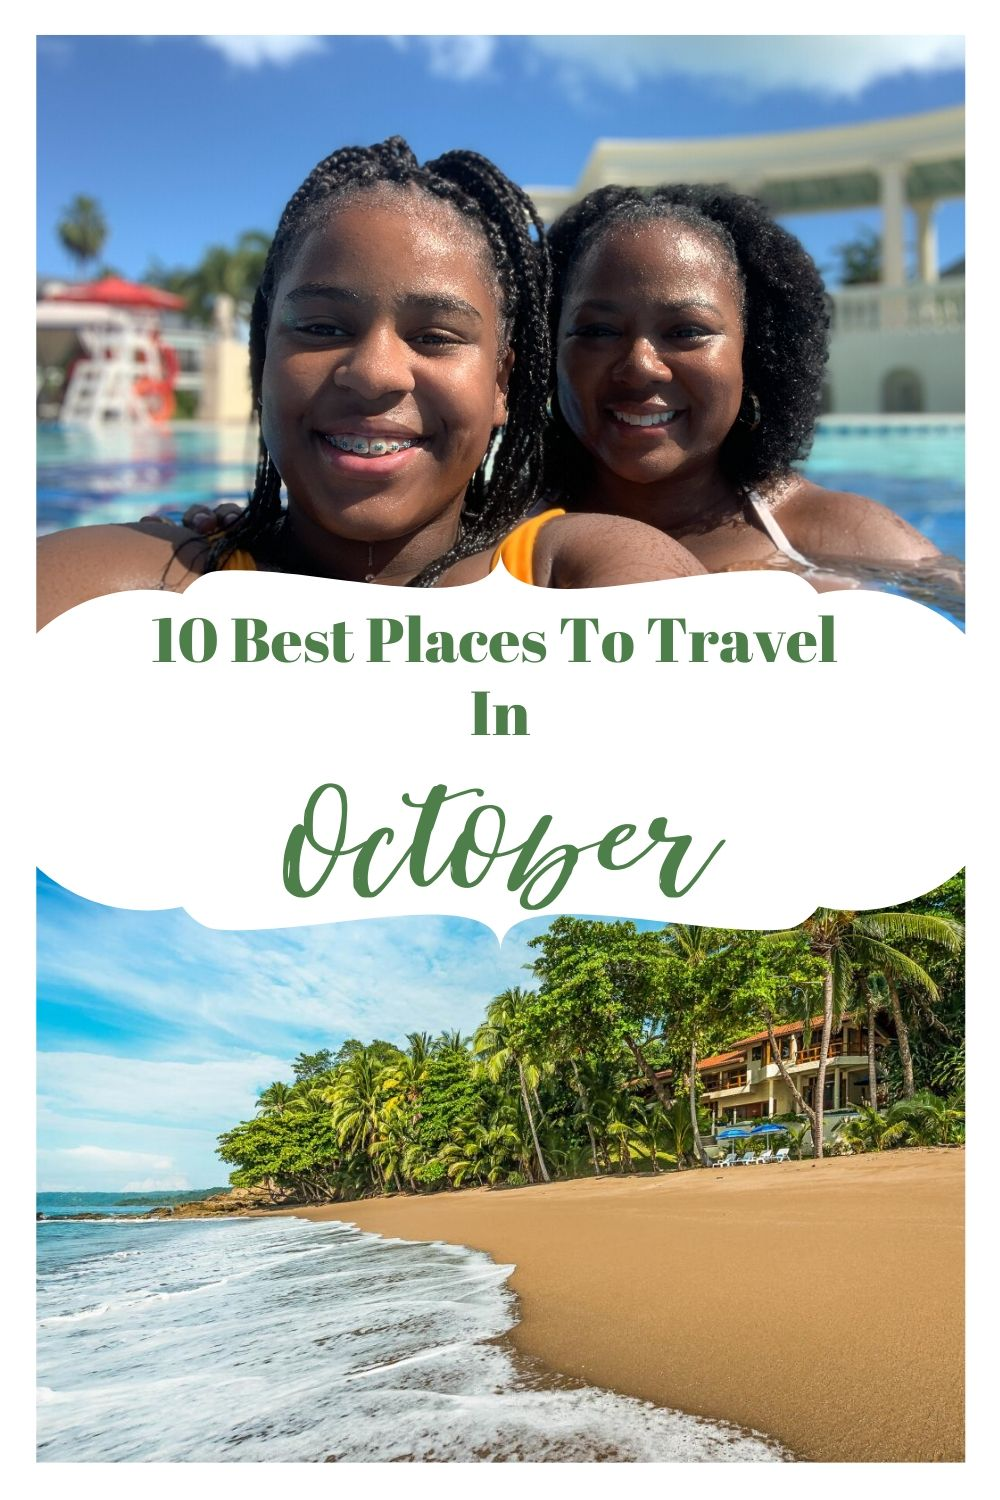 Where to travel in October